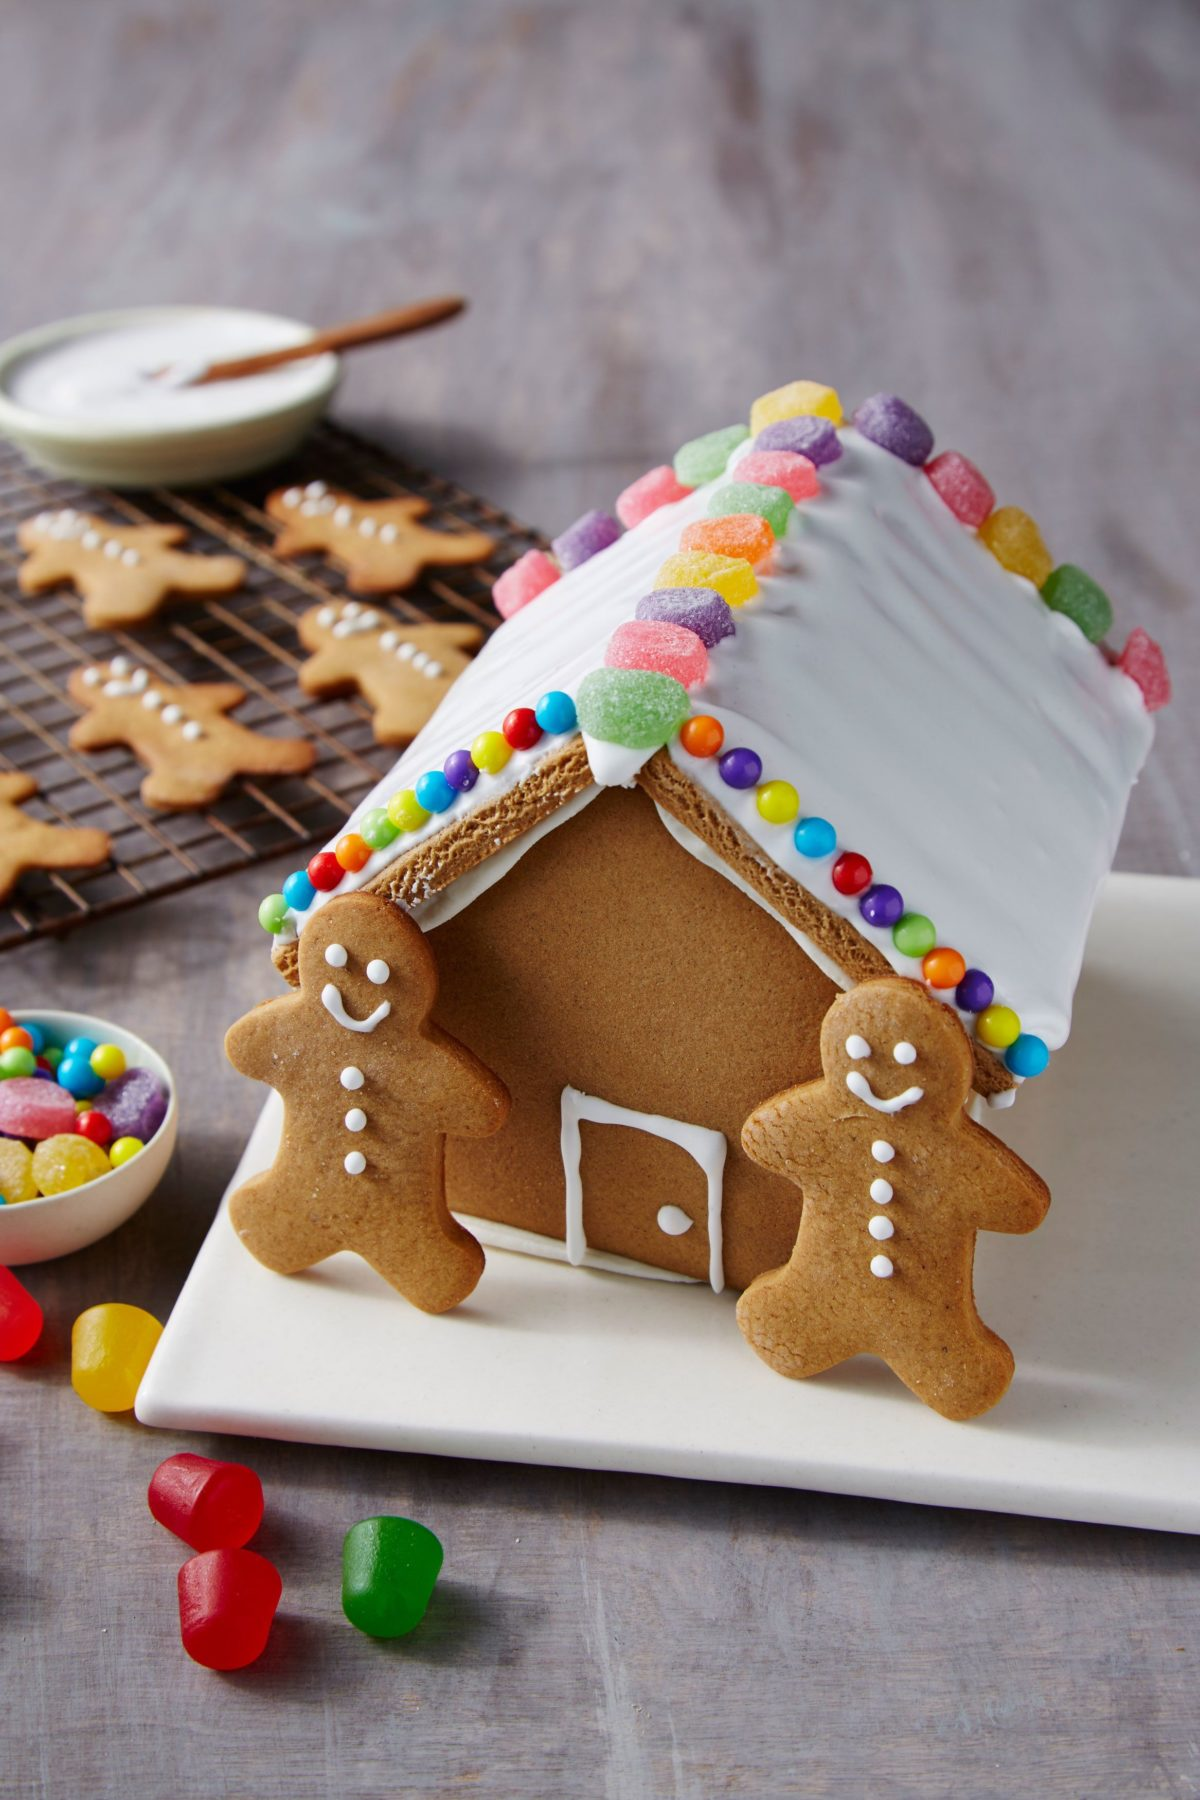 The Not So Holly Jolly History of Gingerbread